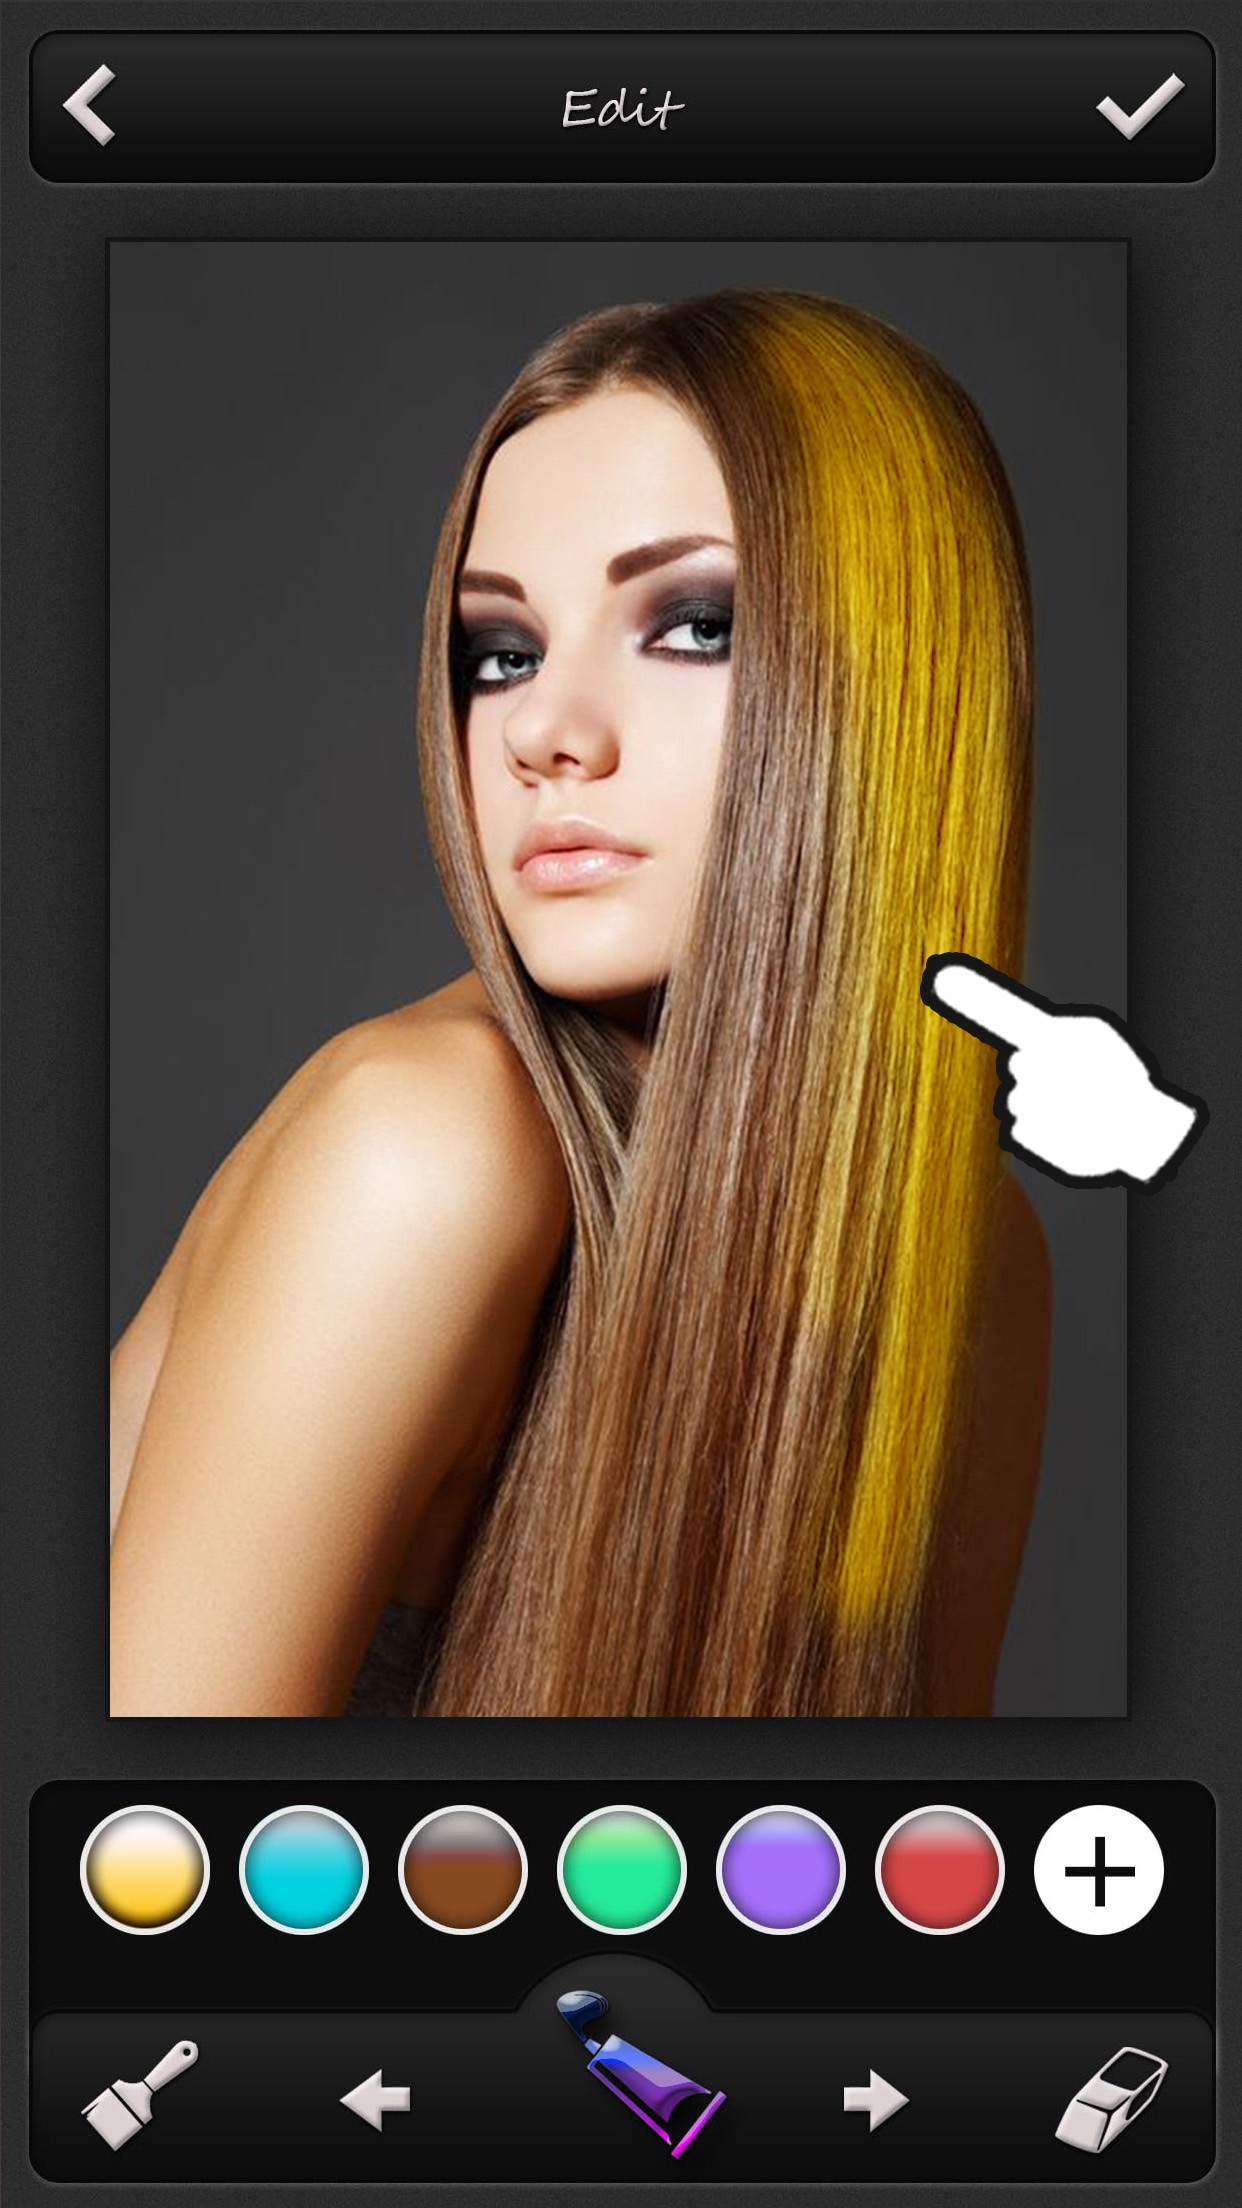 Hair Color Changer - Recolor Booth to Dye, Change & Beautify Hairstyle Screenshot